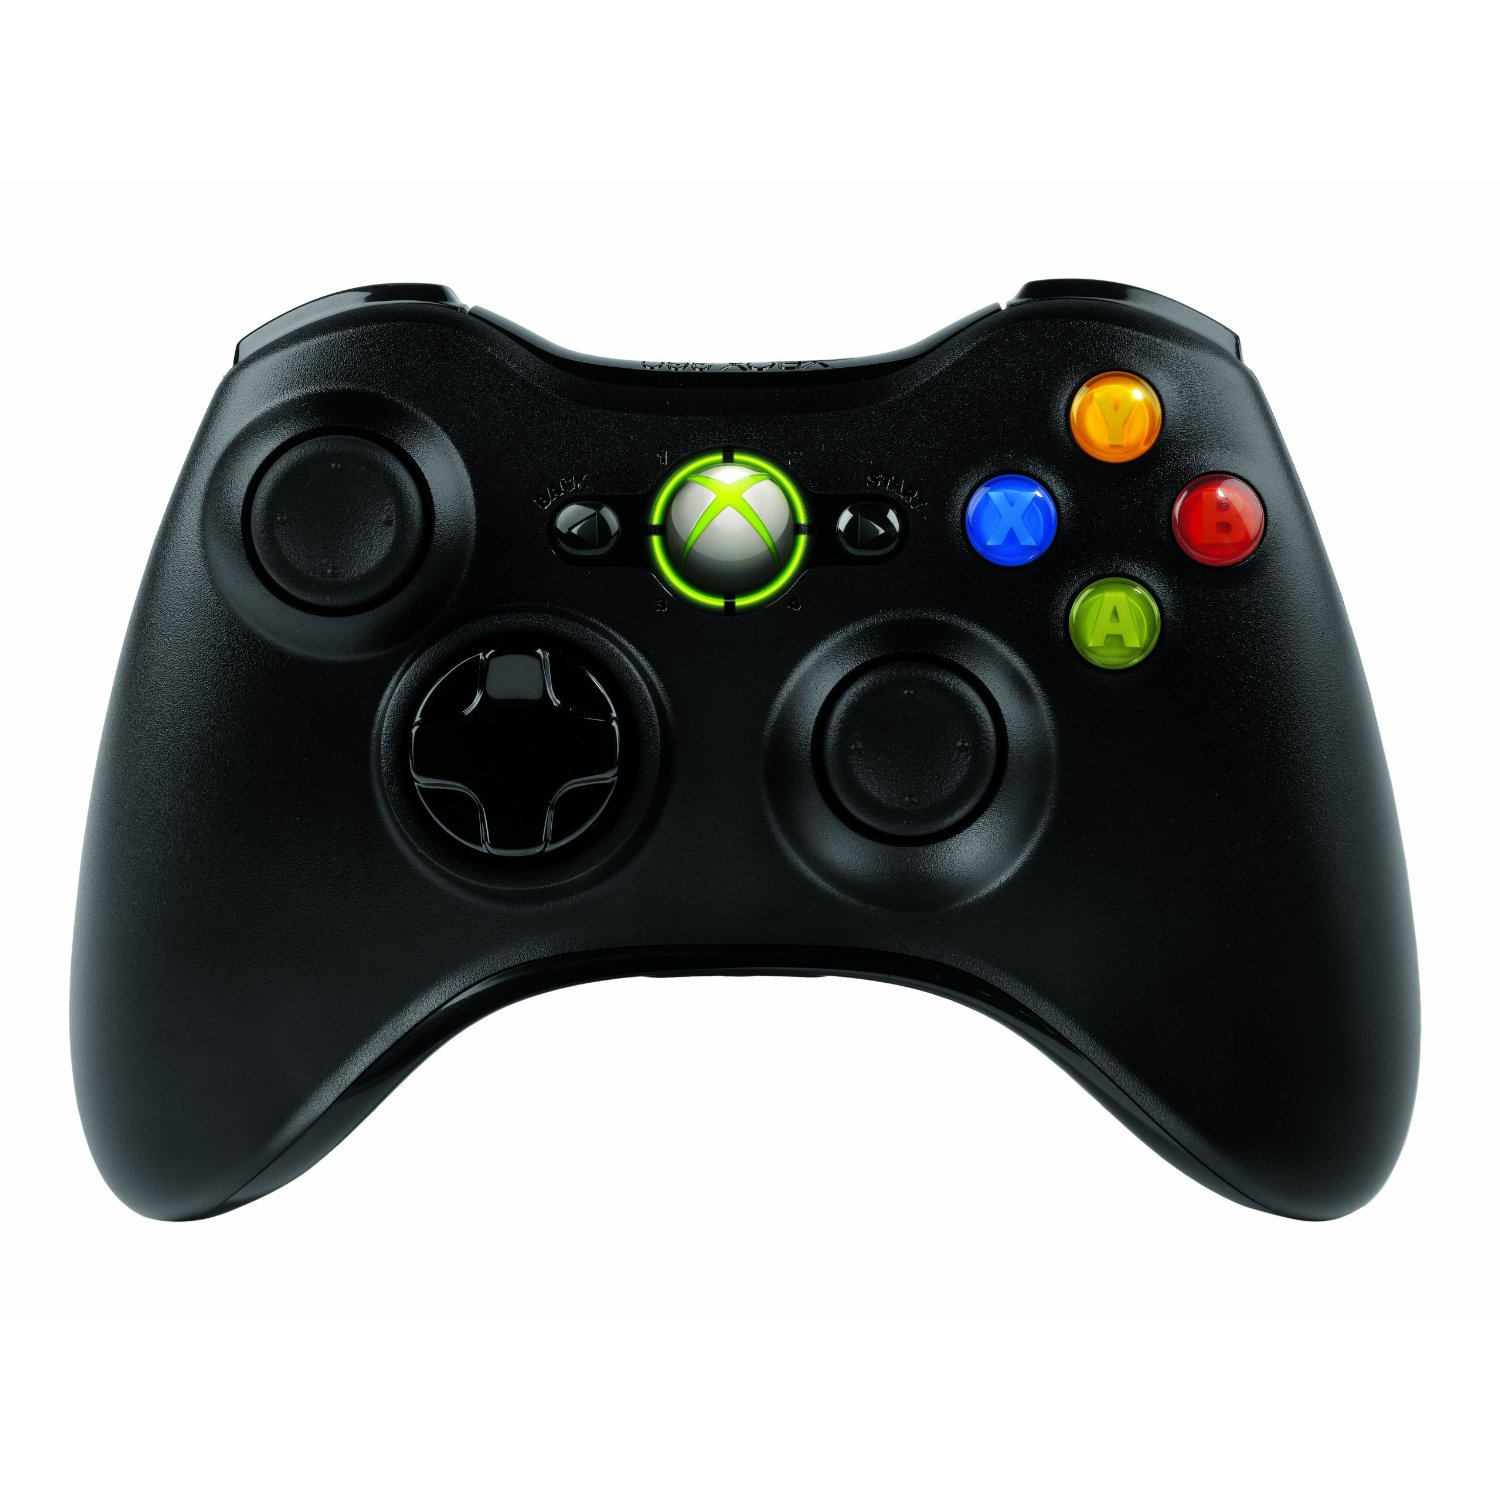 Microsoft Xbox 360 Wireless Controller - Black